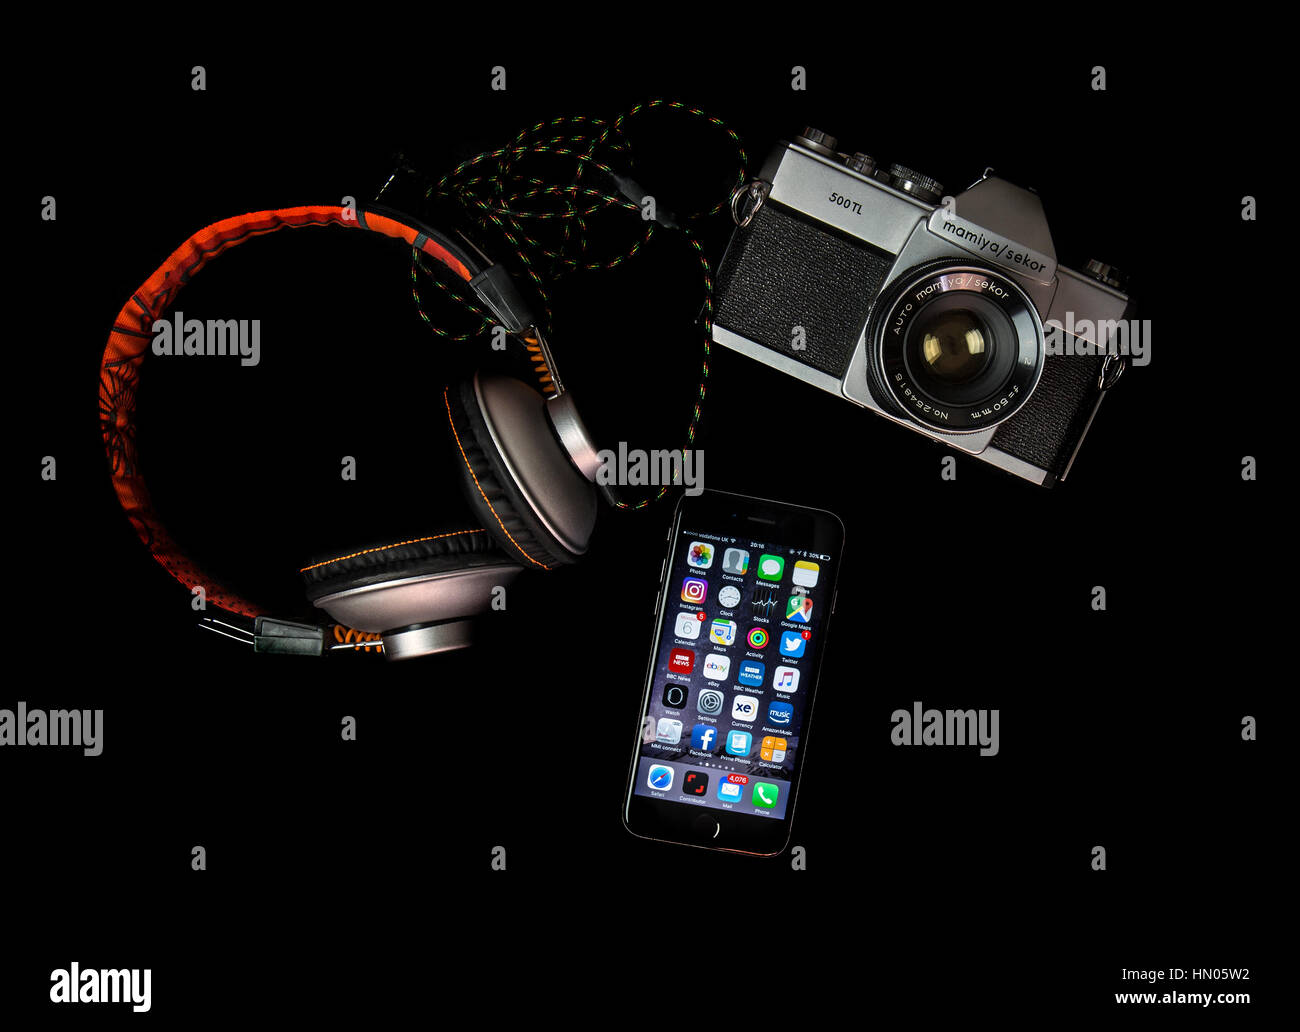 SWINDON, UK - FEBRUARY 7, 2017: Flat Lay with old SLR film camera, iPhone and headphones - Stock Image